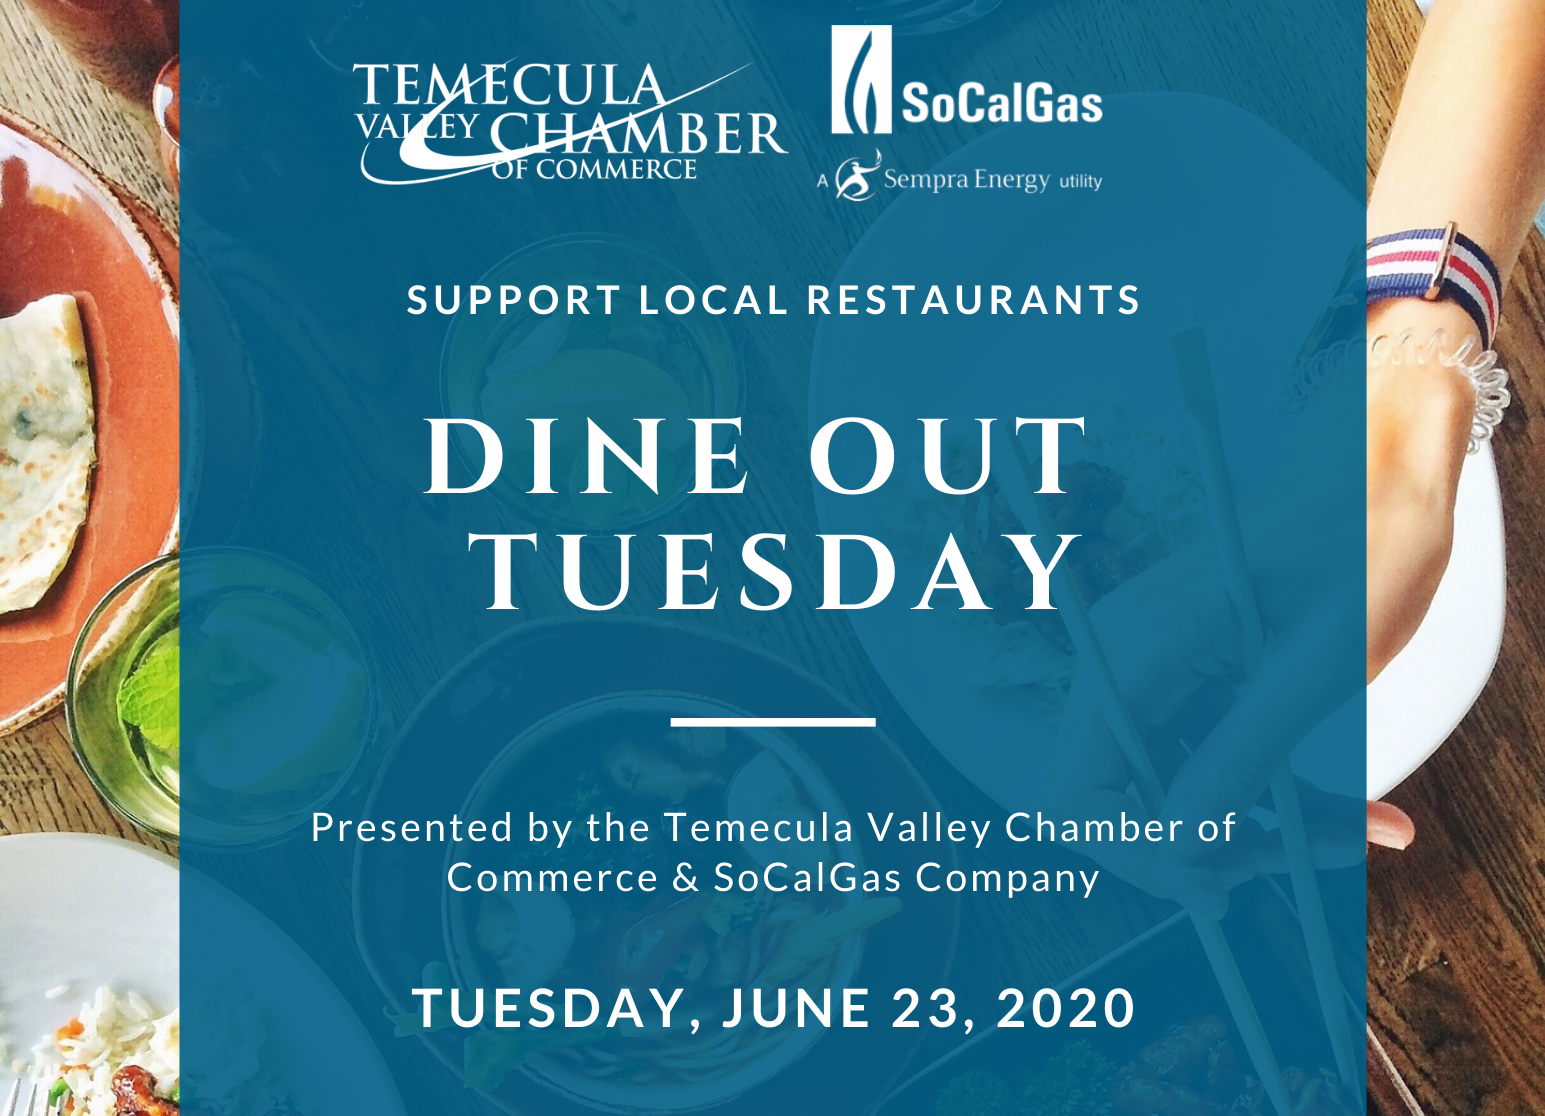 Dine Out Tuesday - Cropped